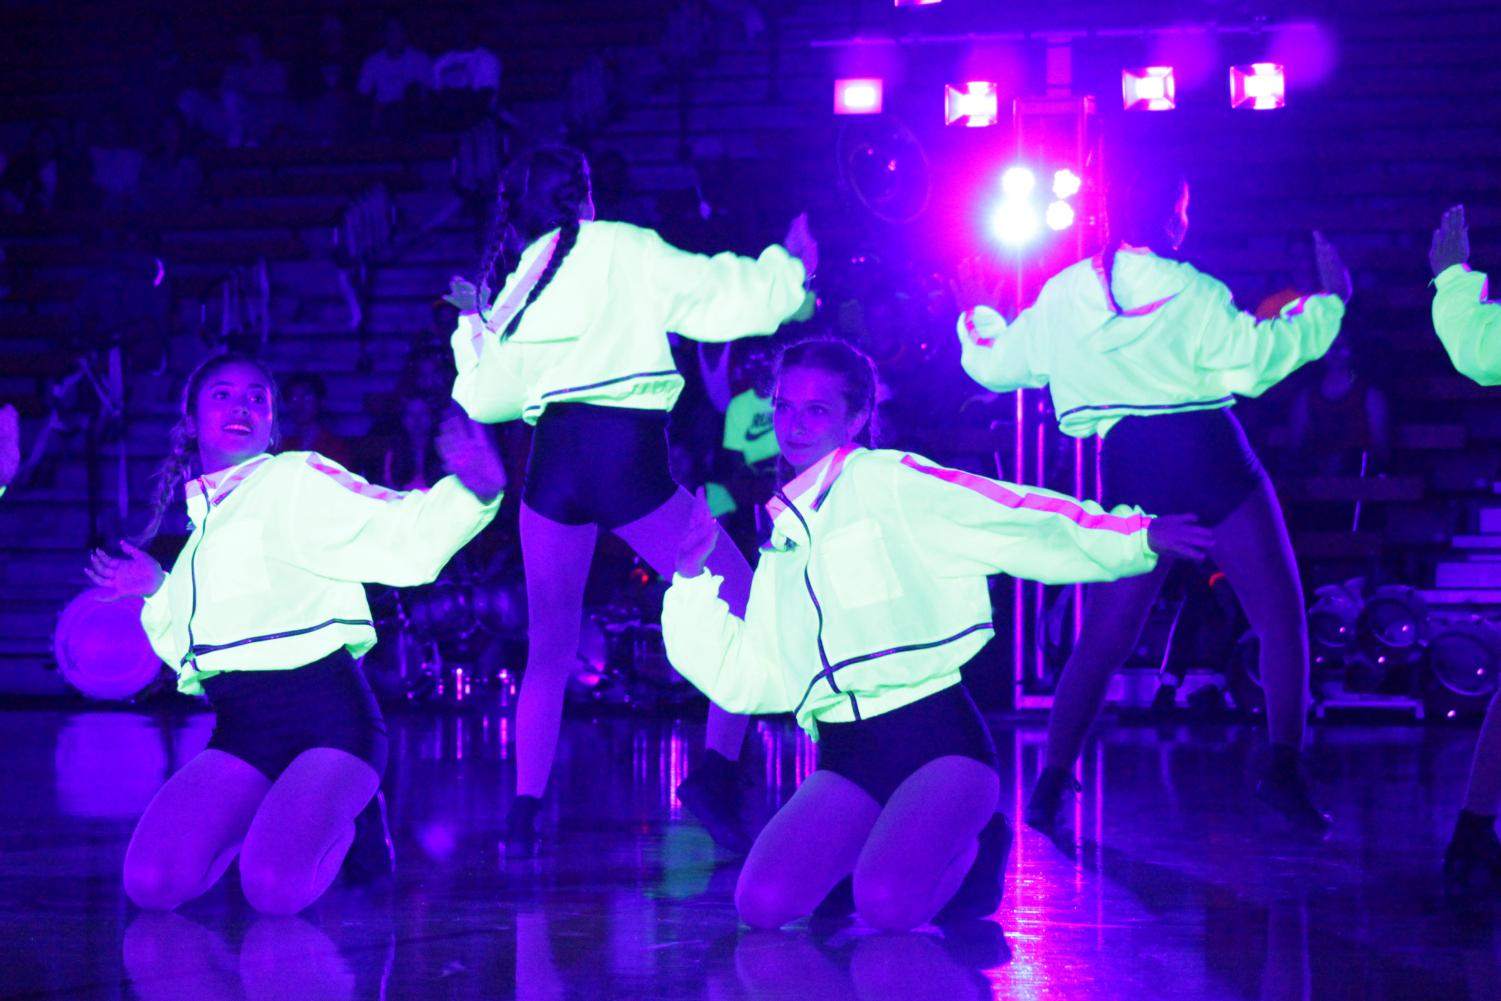 """GLOW IN THE DANCE:  In their team debut, All Female performed at The Homecoming Showcase Night Rally on Oct. 10. """"I don't care if you can dance [or] if you have taken a class one time, anybody can dance,"""" senior Faith McGrath said. """"If you can get up and more your body if you can move anything at all you can dance."""""""